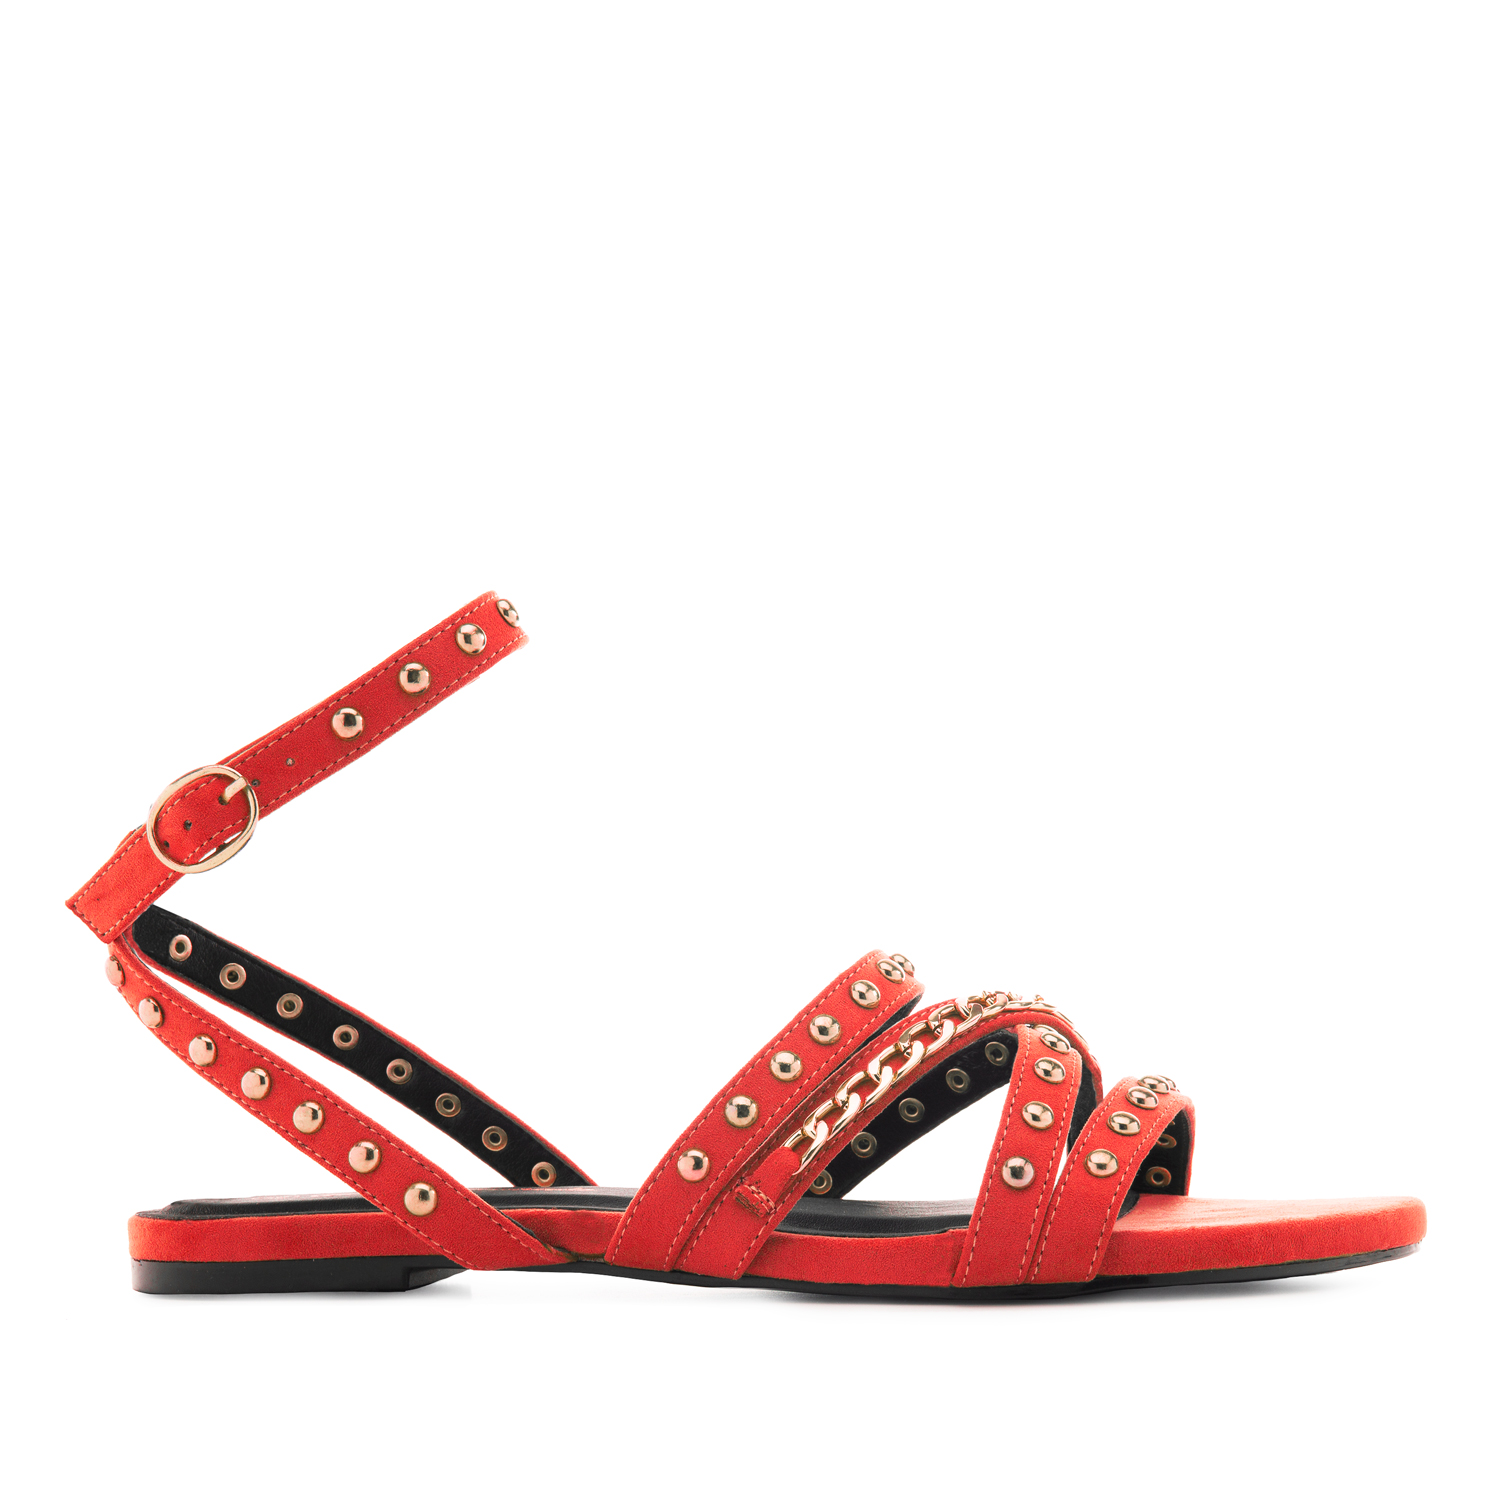 Multi-Stud Sandals in Red Suede